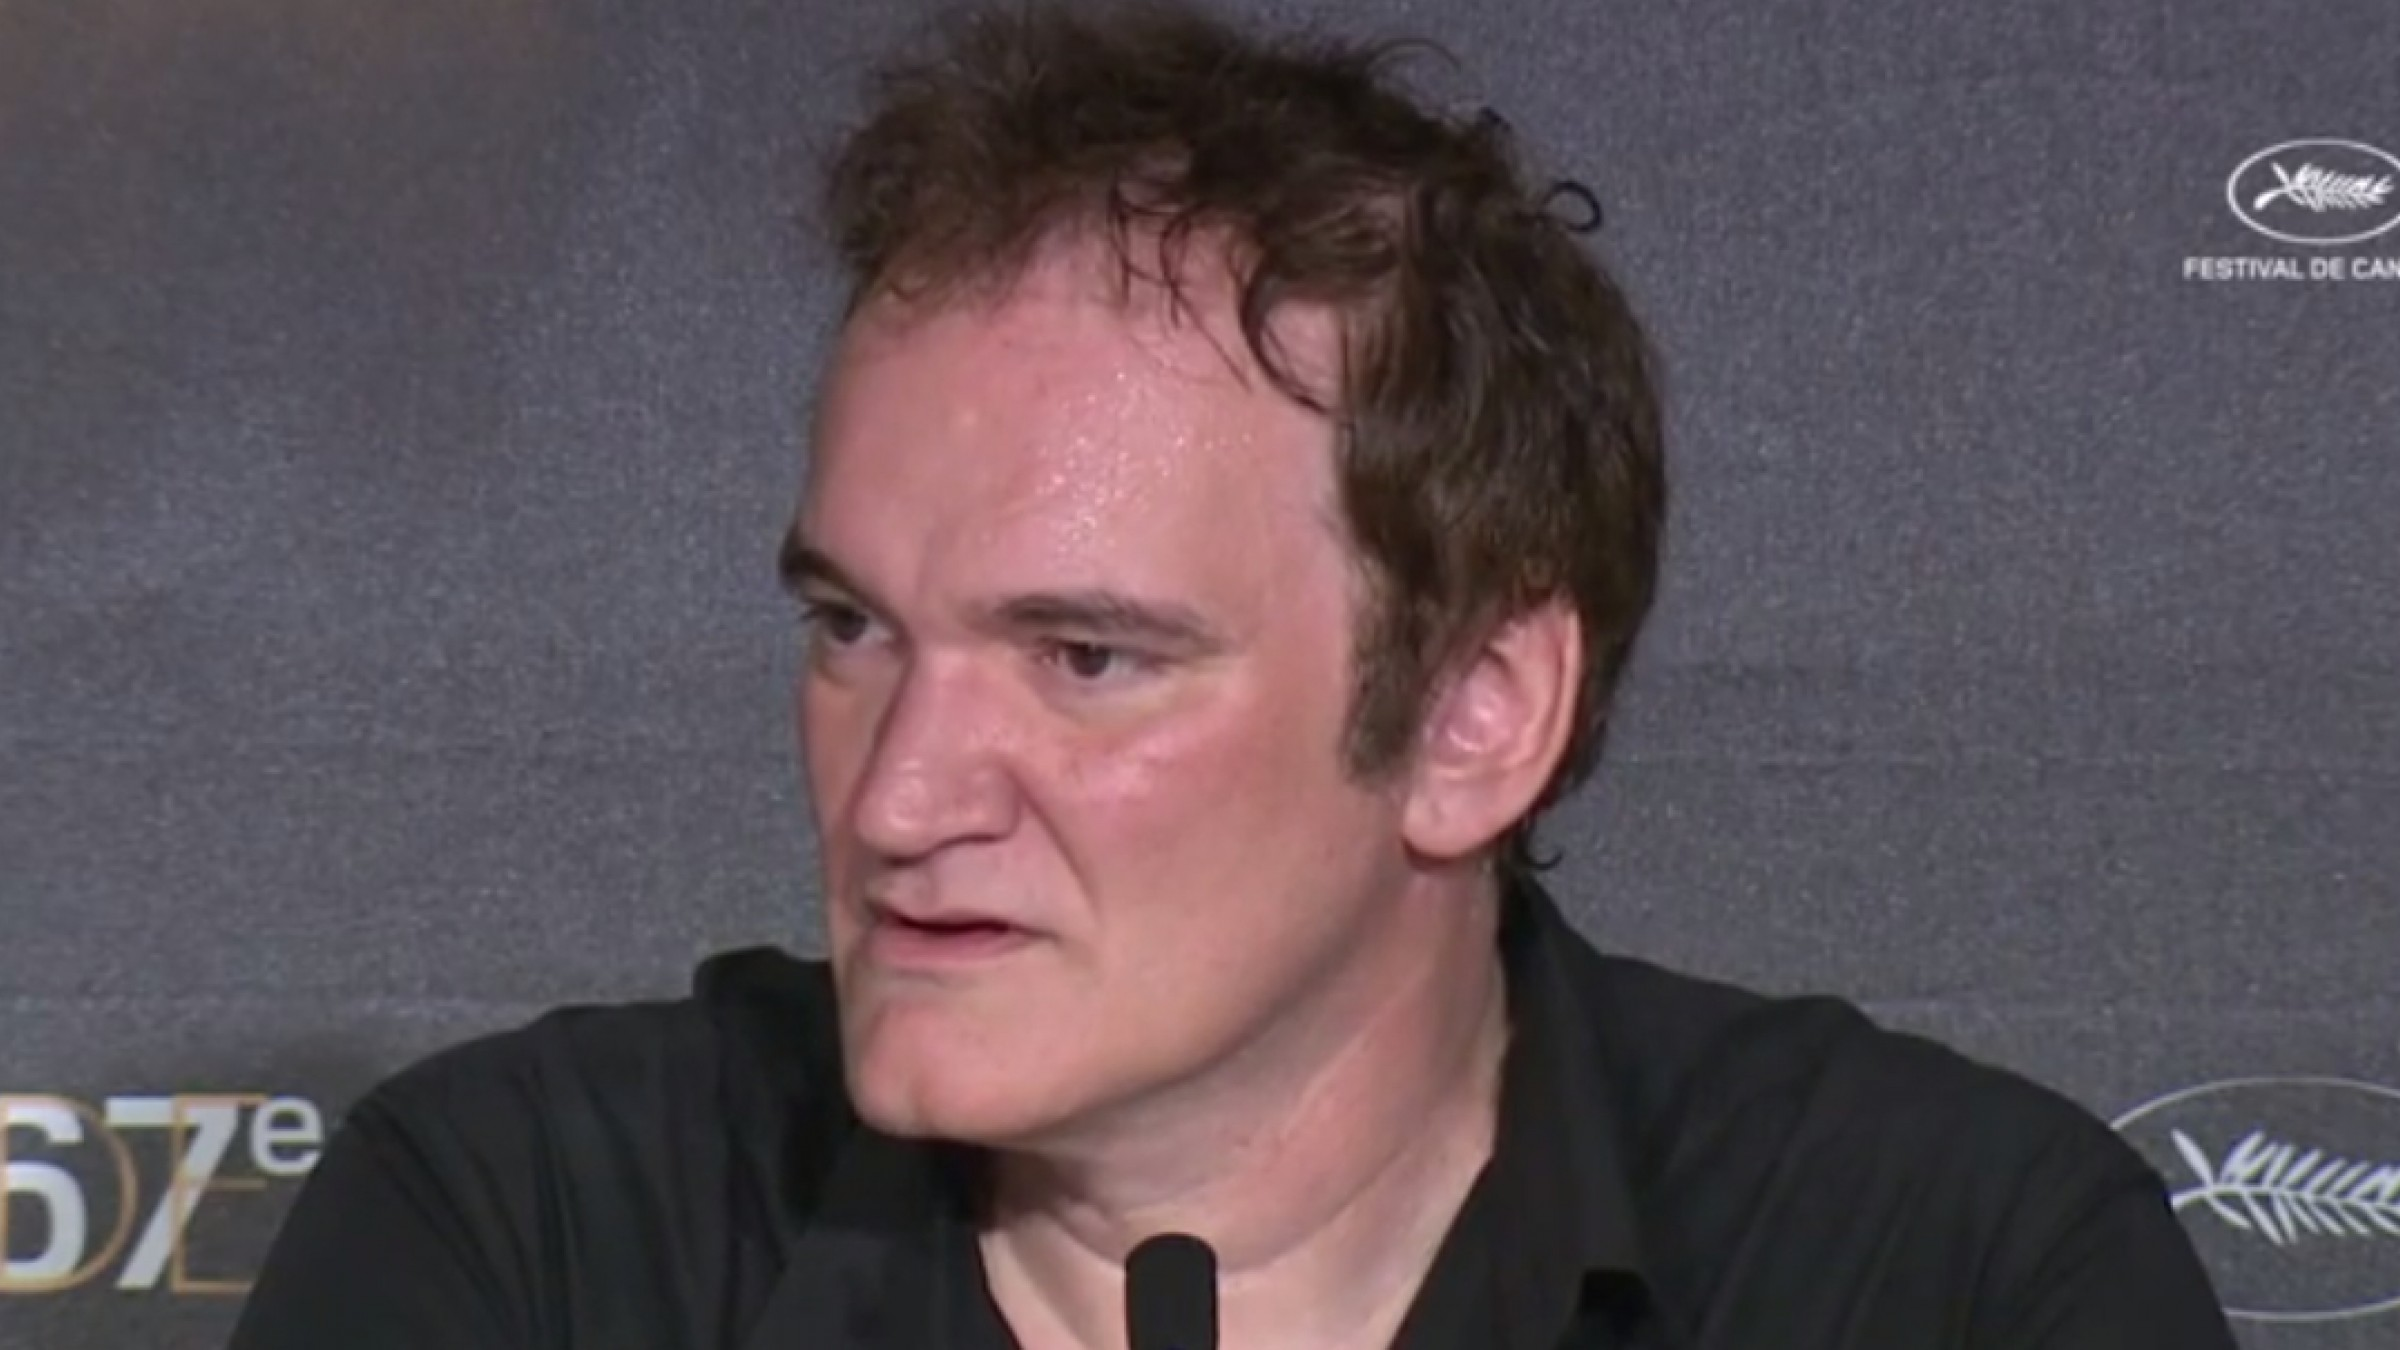 Quentin Tarantino Says Digital Projection Is The Death Of Cinema